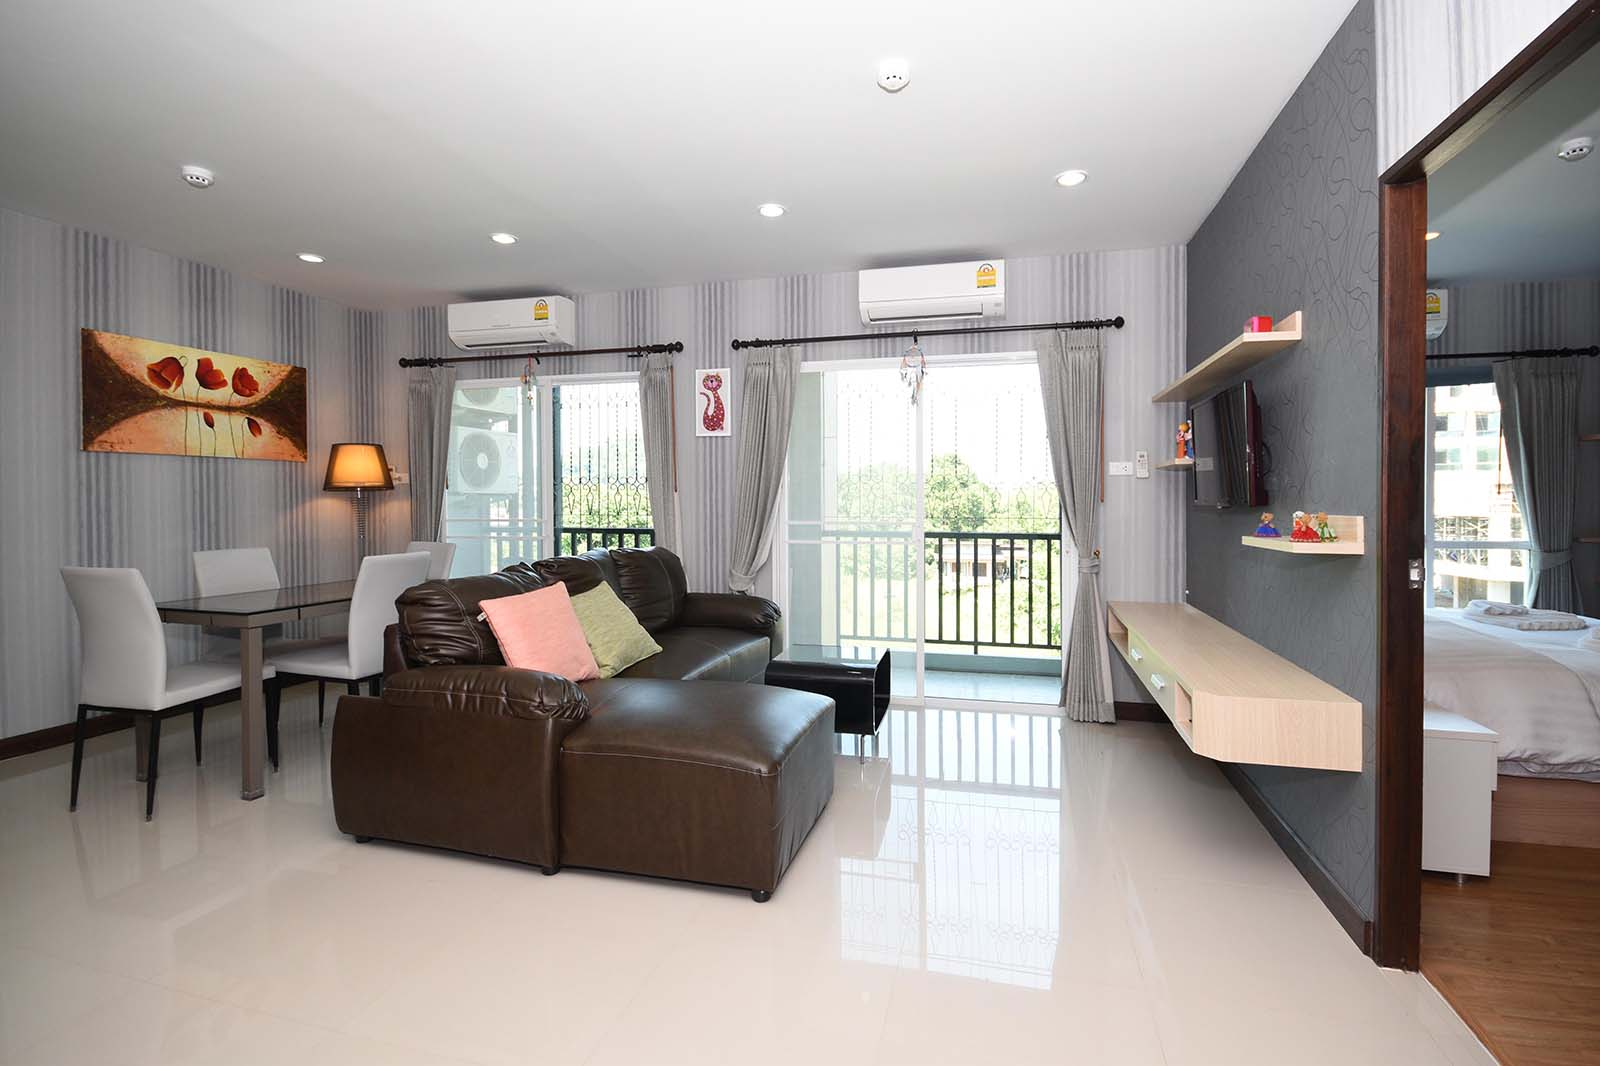 for sale - Two-Bedroom Furnished Condominium. 15-mins Walk to Beach - Ao Nang, Krabi